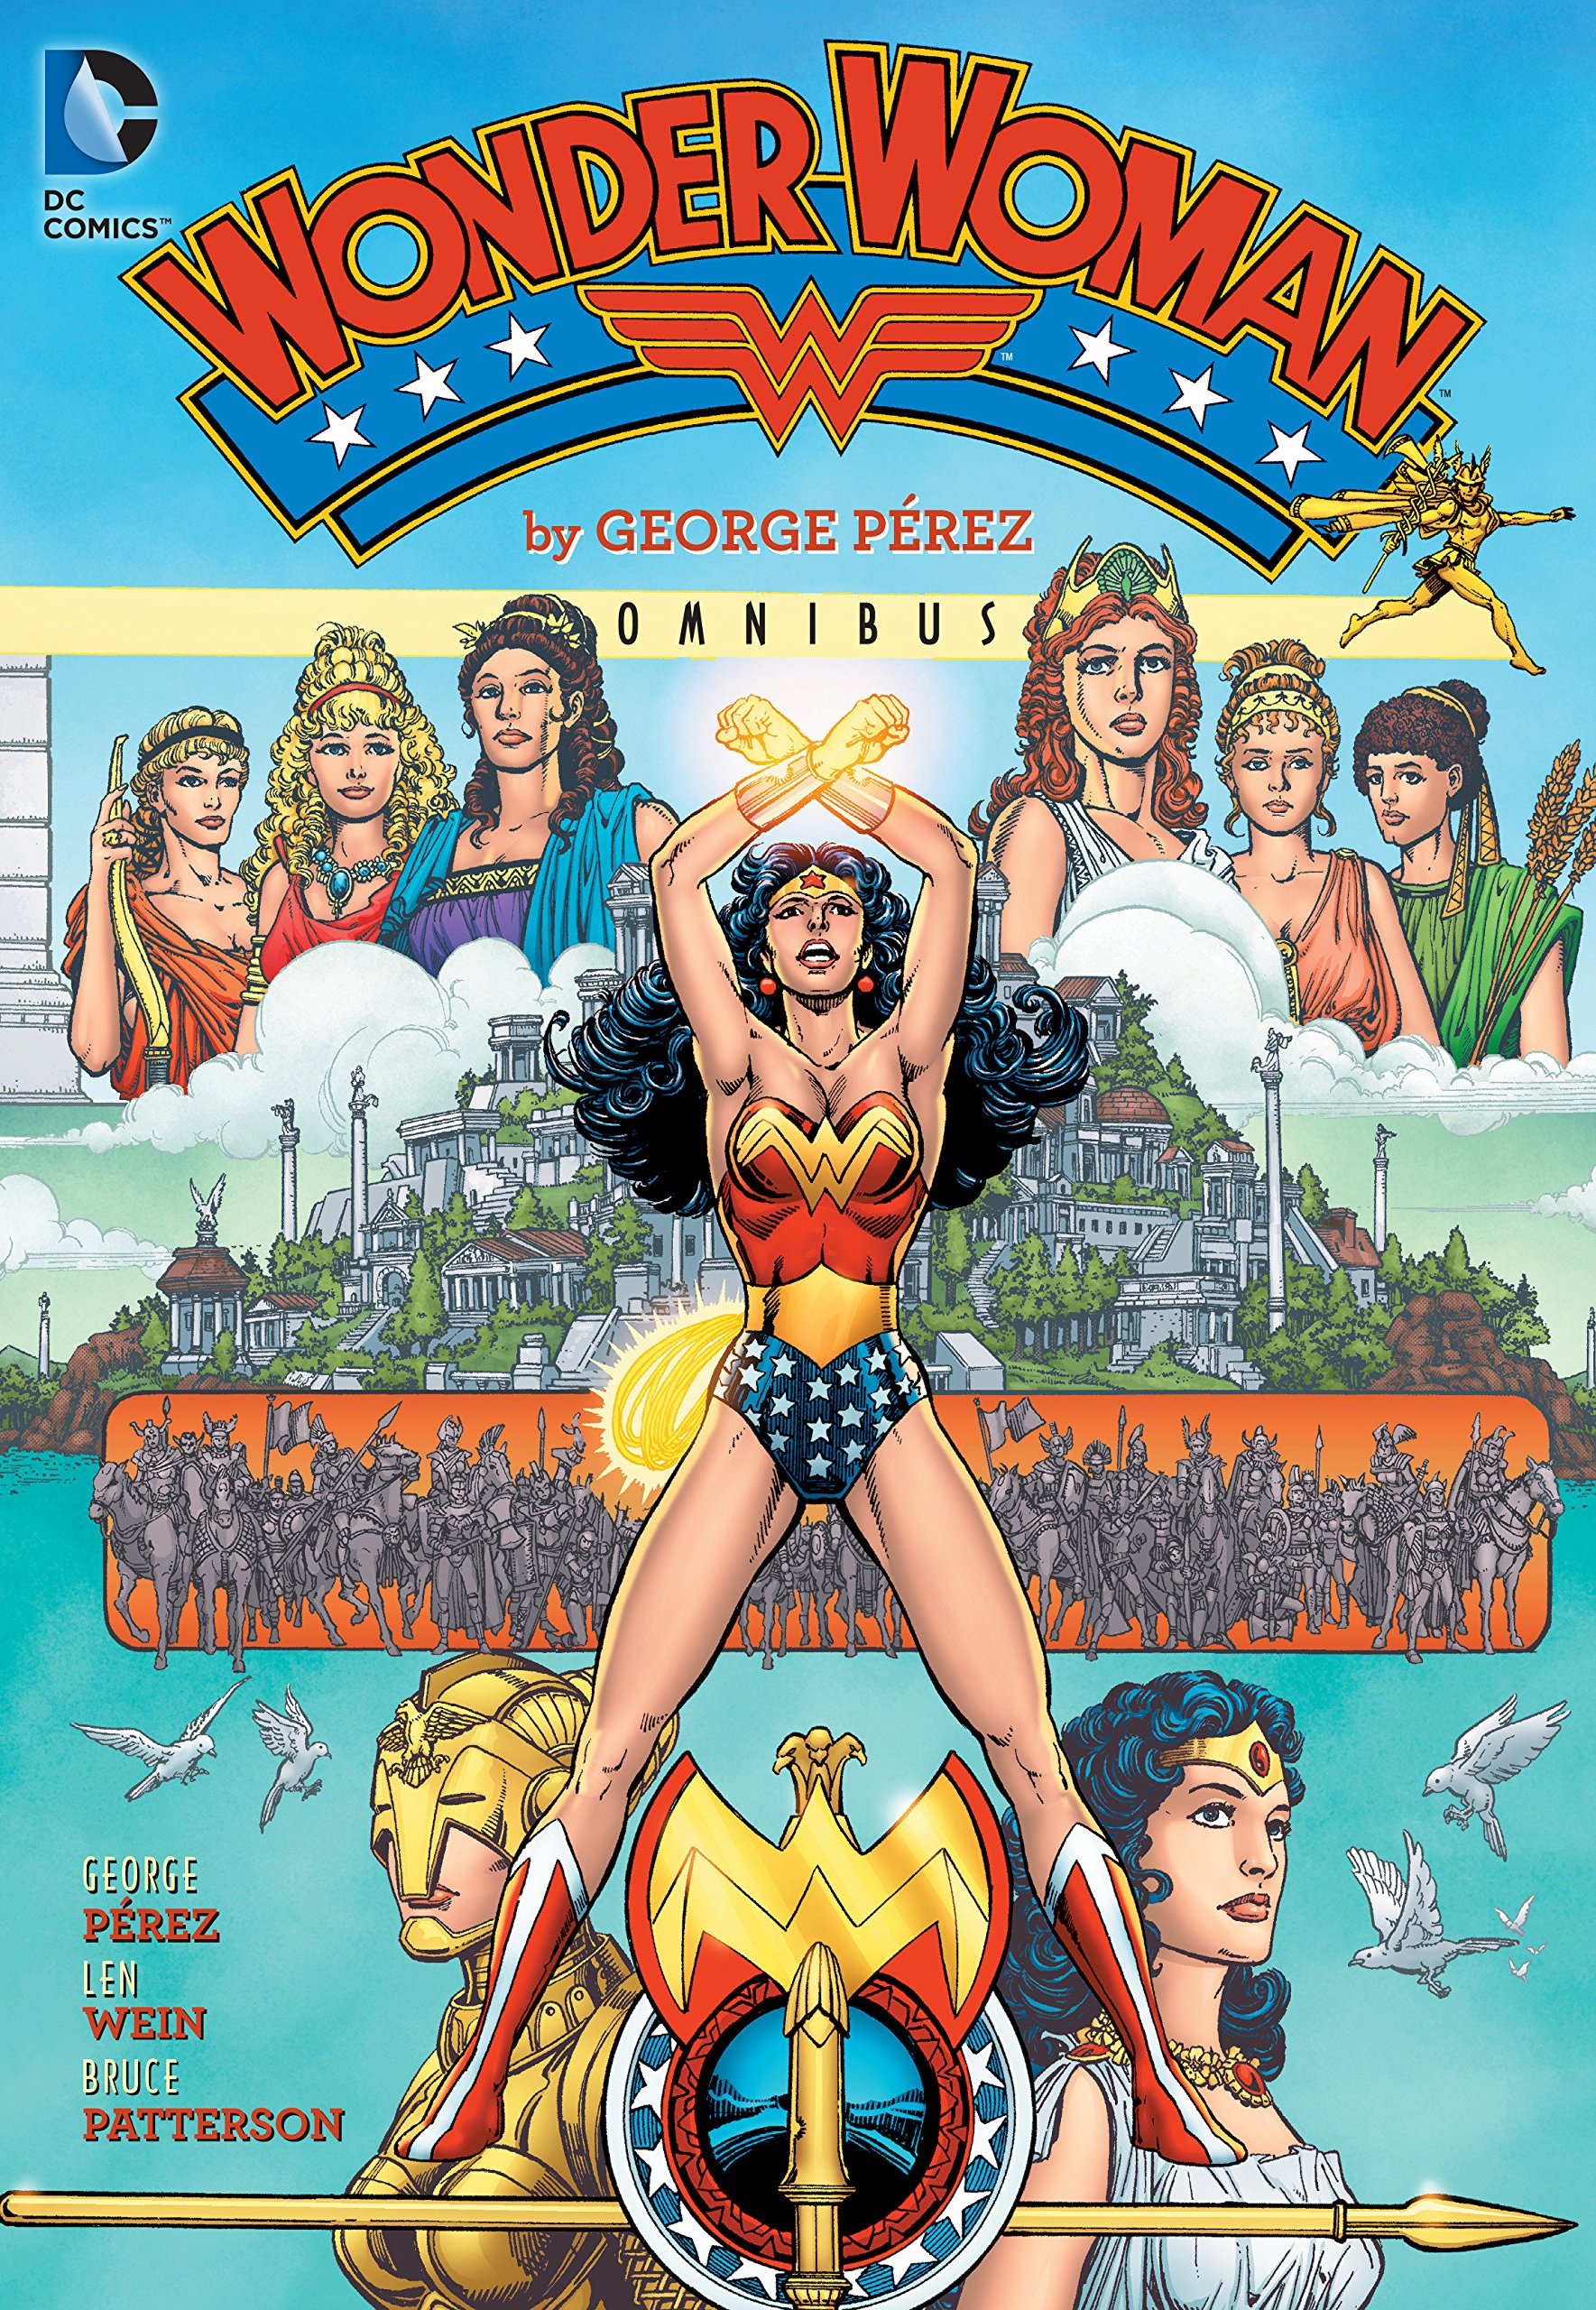 Wonder Woman by George Perez Omnibus Vol. 1 by DC Comics